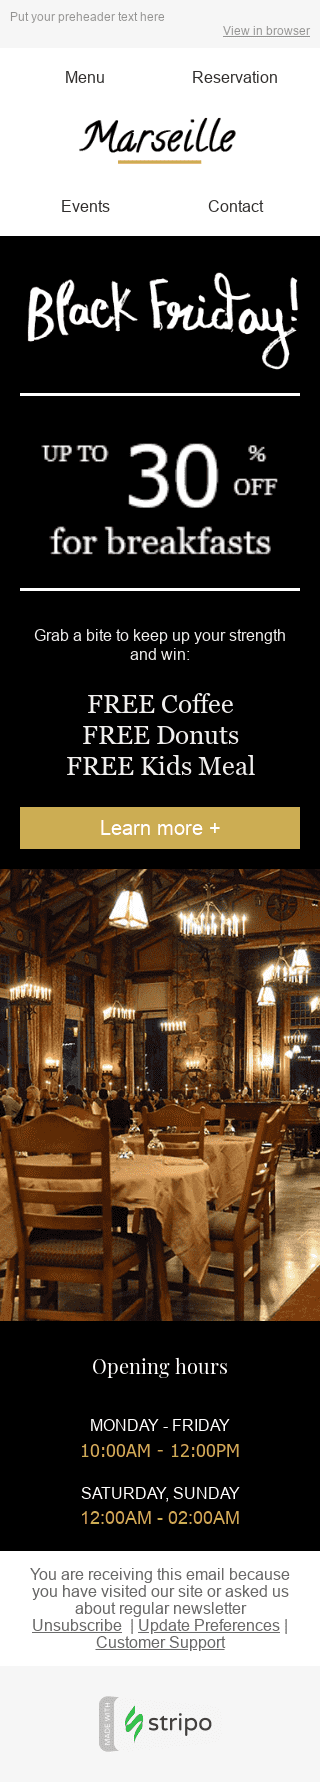 "Black Friday Email Template ""Free Goodies"" for Restaurants industry mobile view"